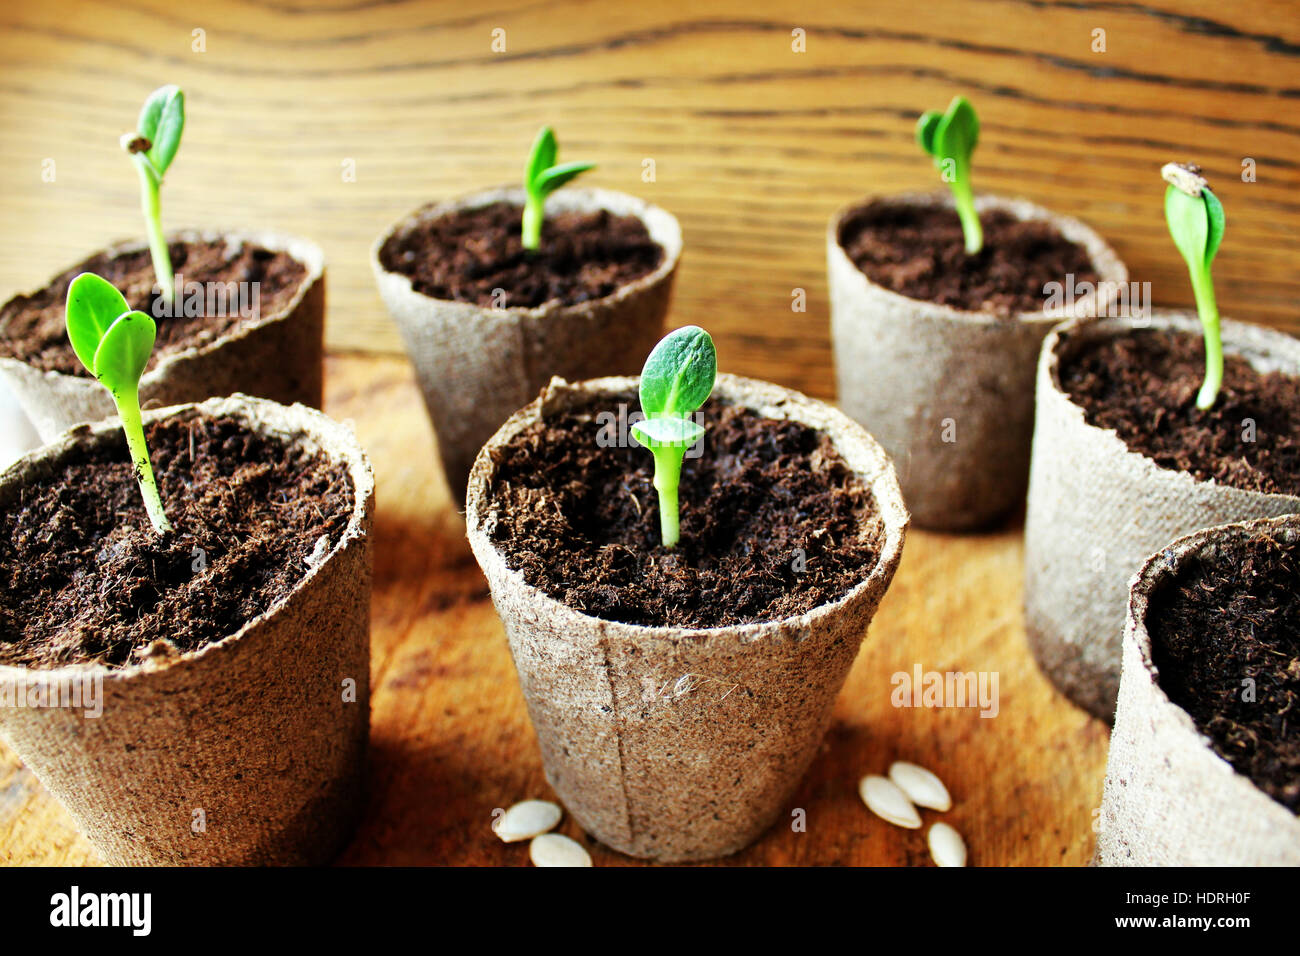 Gardening background.Young fresh seedling growing in pot. - Stock Image